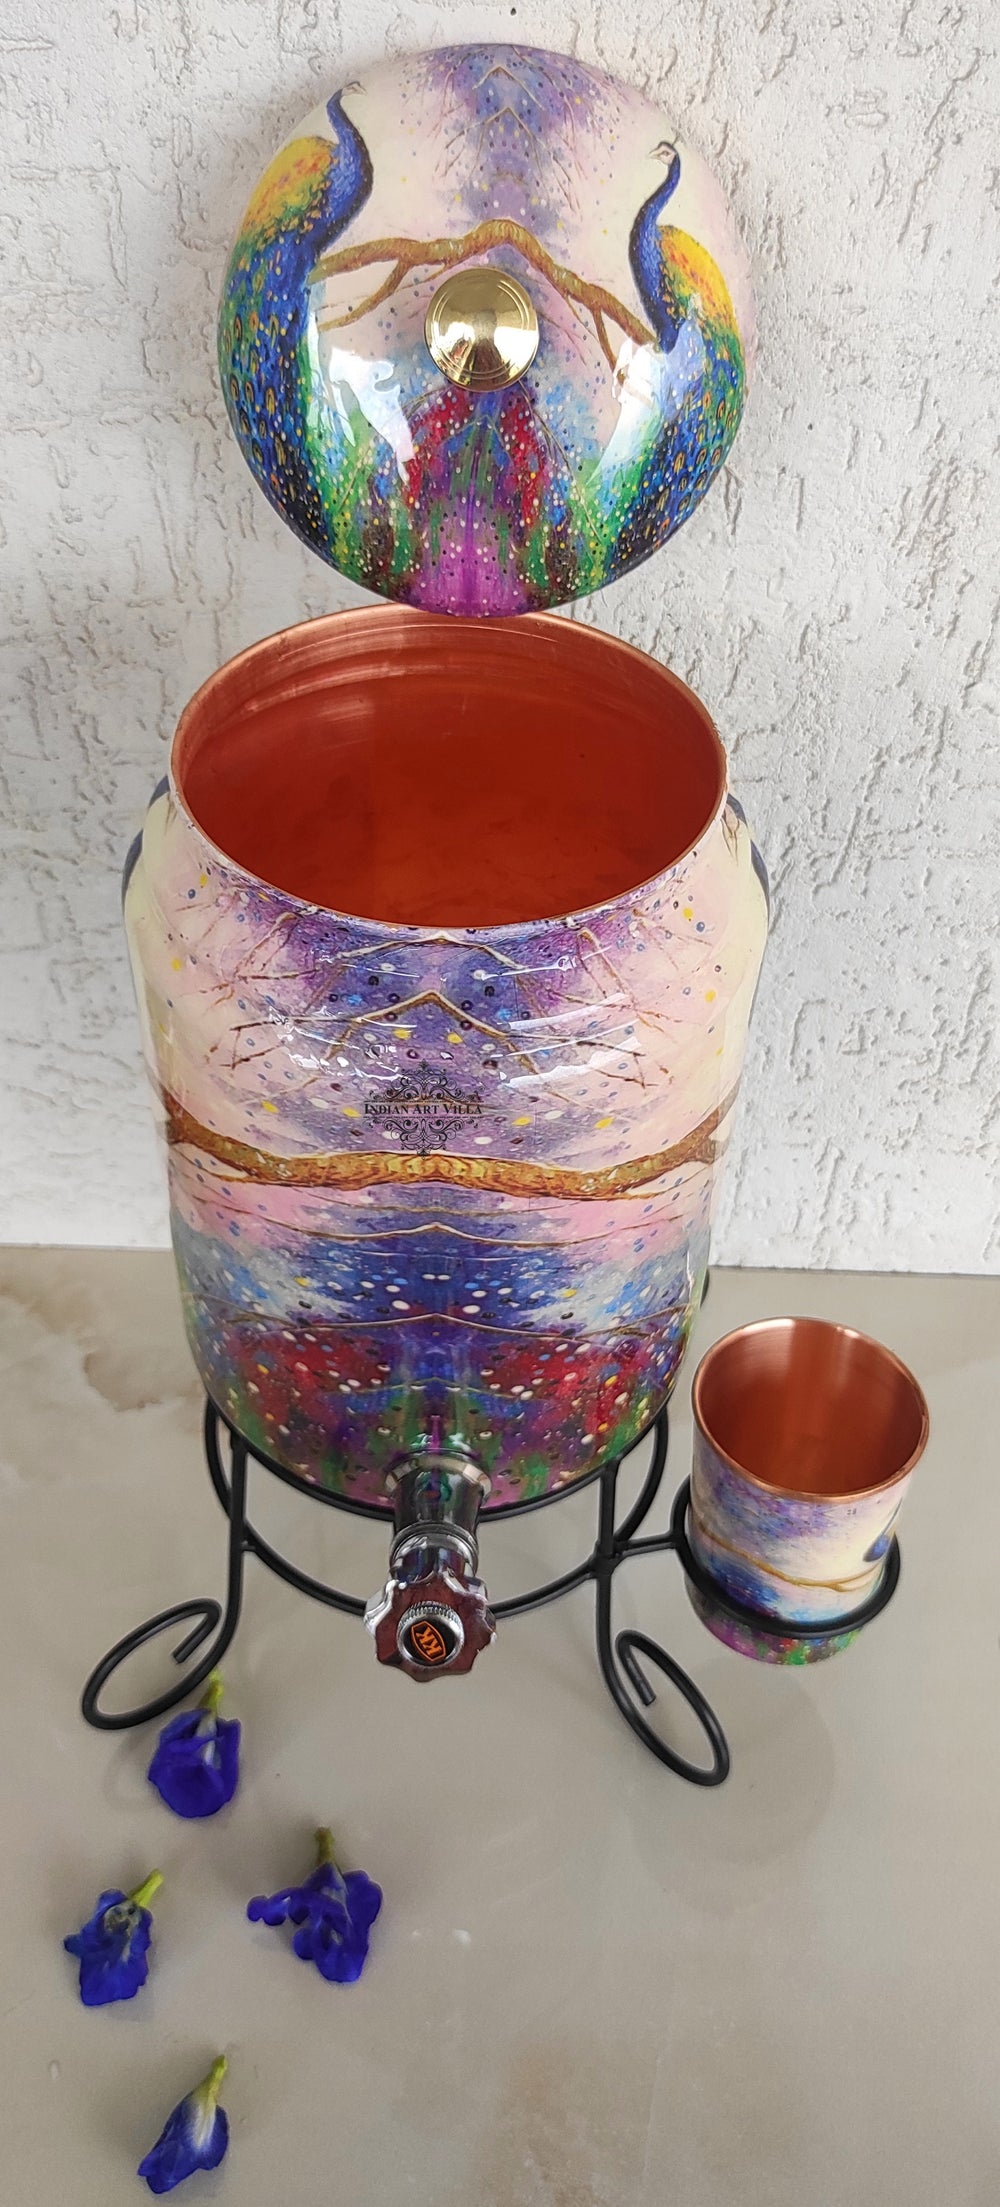 Copper Colorful Peacock Printed Design Water Pot With Stand & Glass 5 Litres